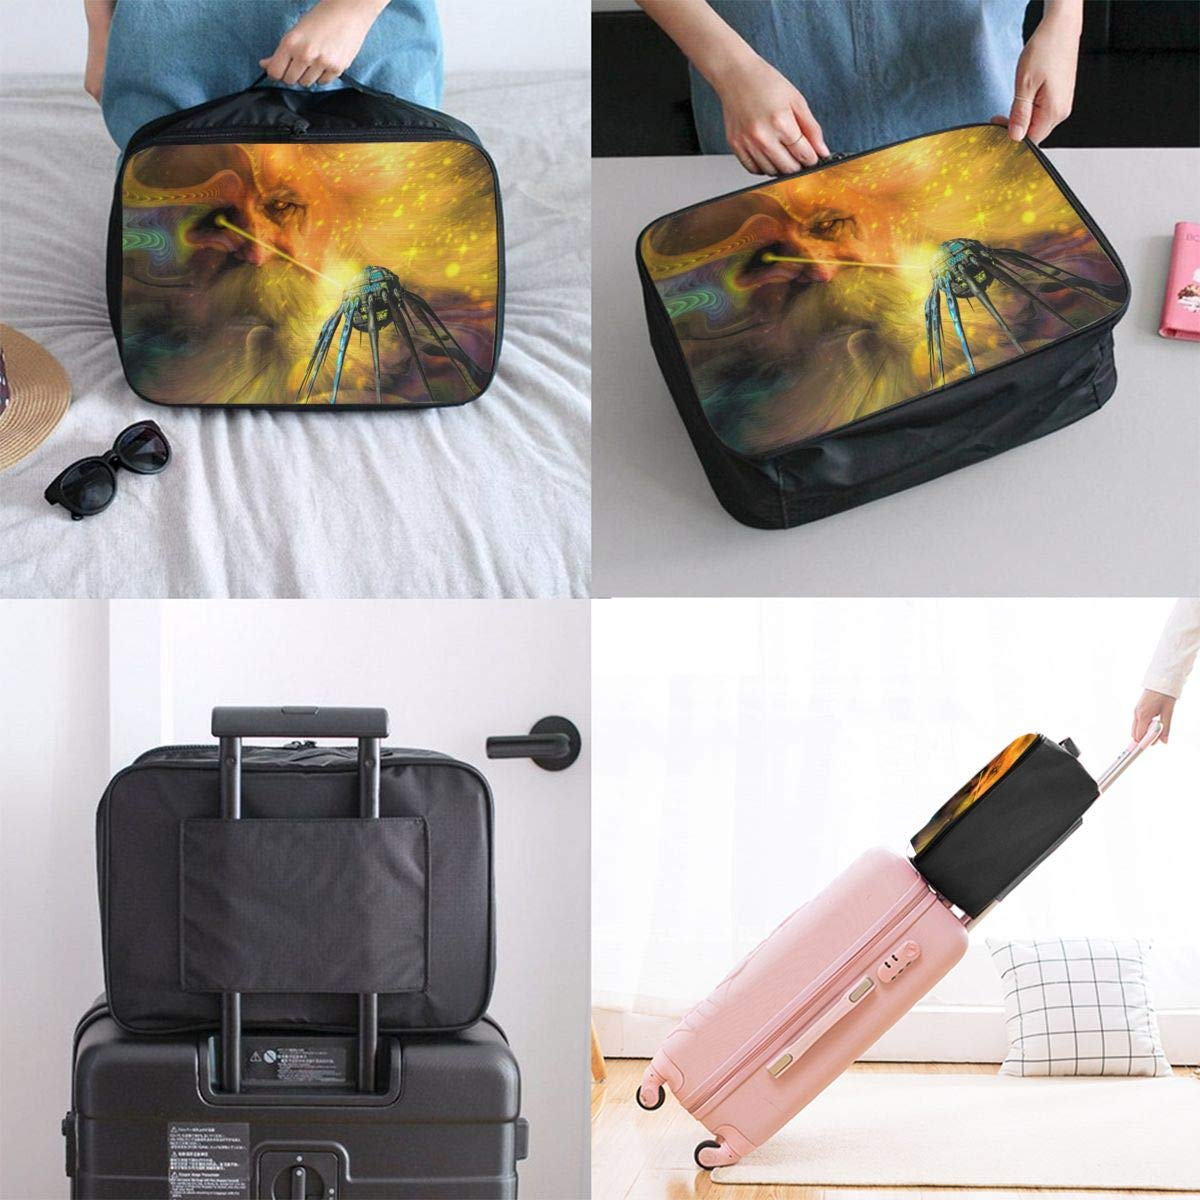 Abstract Decorate Colourful Painting Airship Travel Lightweight Waterproof Foldable Storage Carry Luggage Large Capacity Portable Luggage Bag Duffel Bag